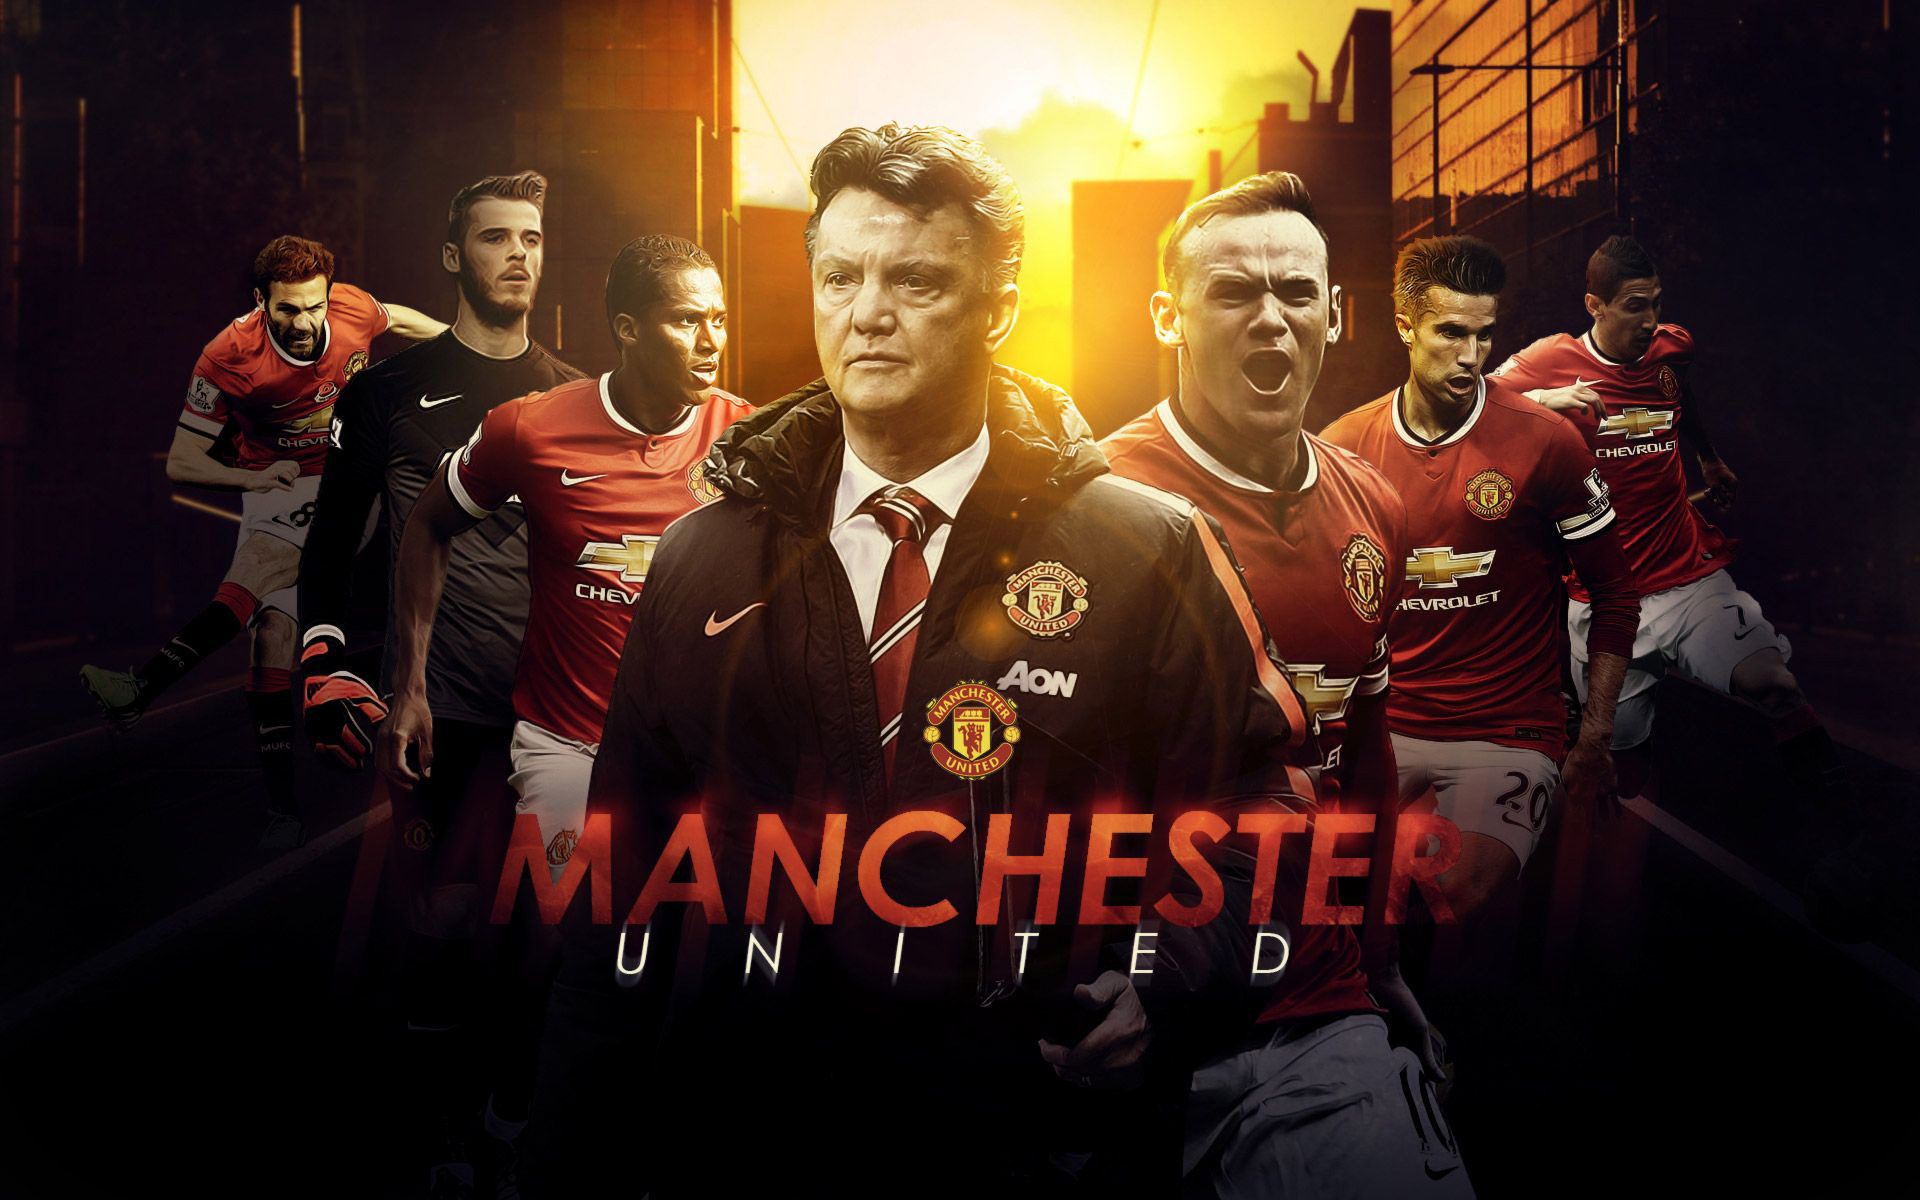 Free Download Manchester United Wallpapers Hd 1920x1200 For Your Desktop Mobile Tablet Explore 76 Man Utd Wallpaper Man Utd Wallpapers 2015 Manchester United Wallpaper 2014 2015 Man Utd Wallpaper Hd